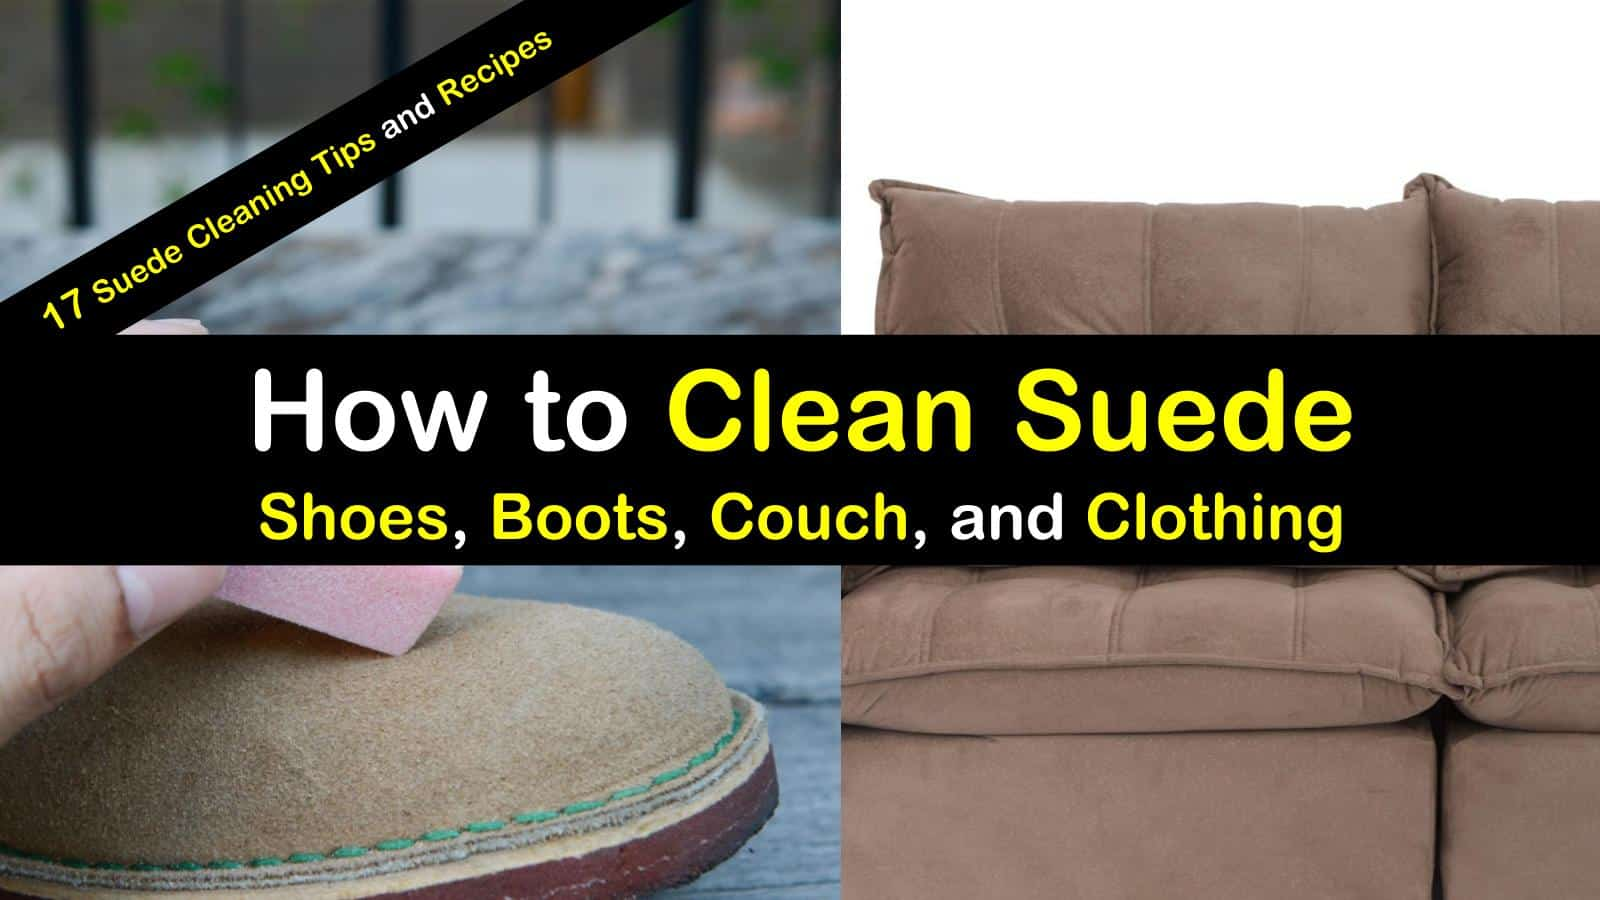 How to Clean Suede Shoes Tips images